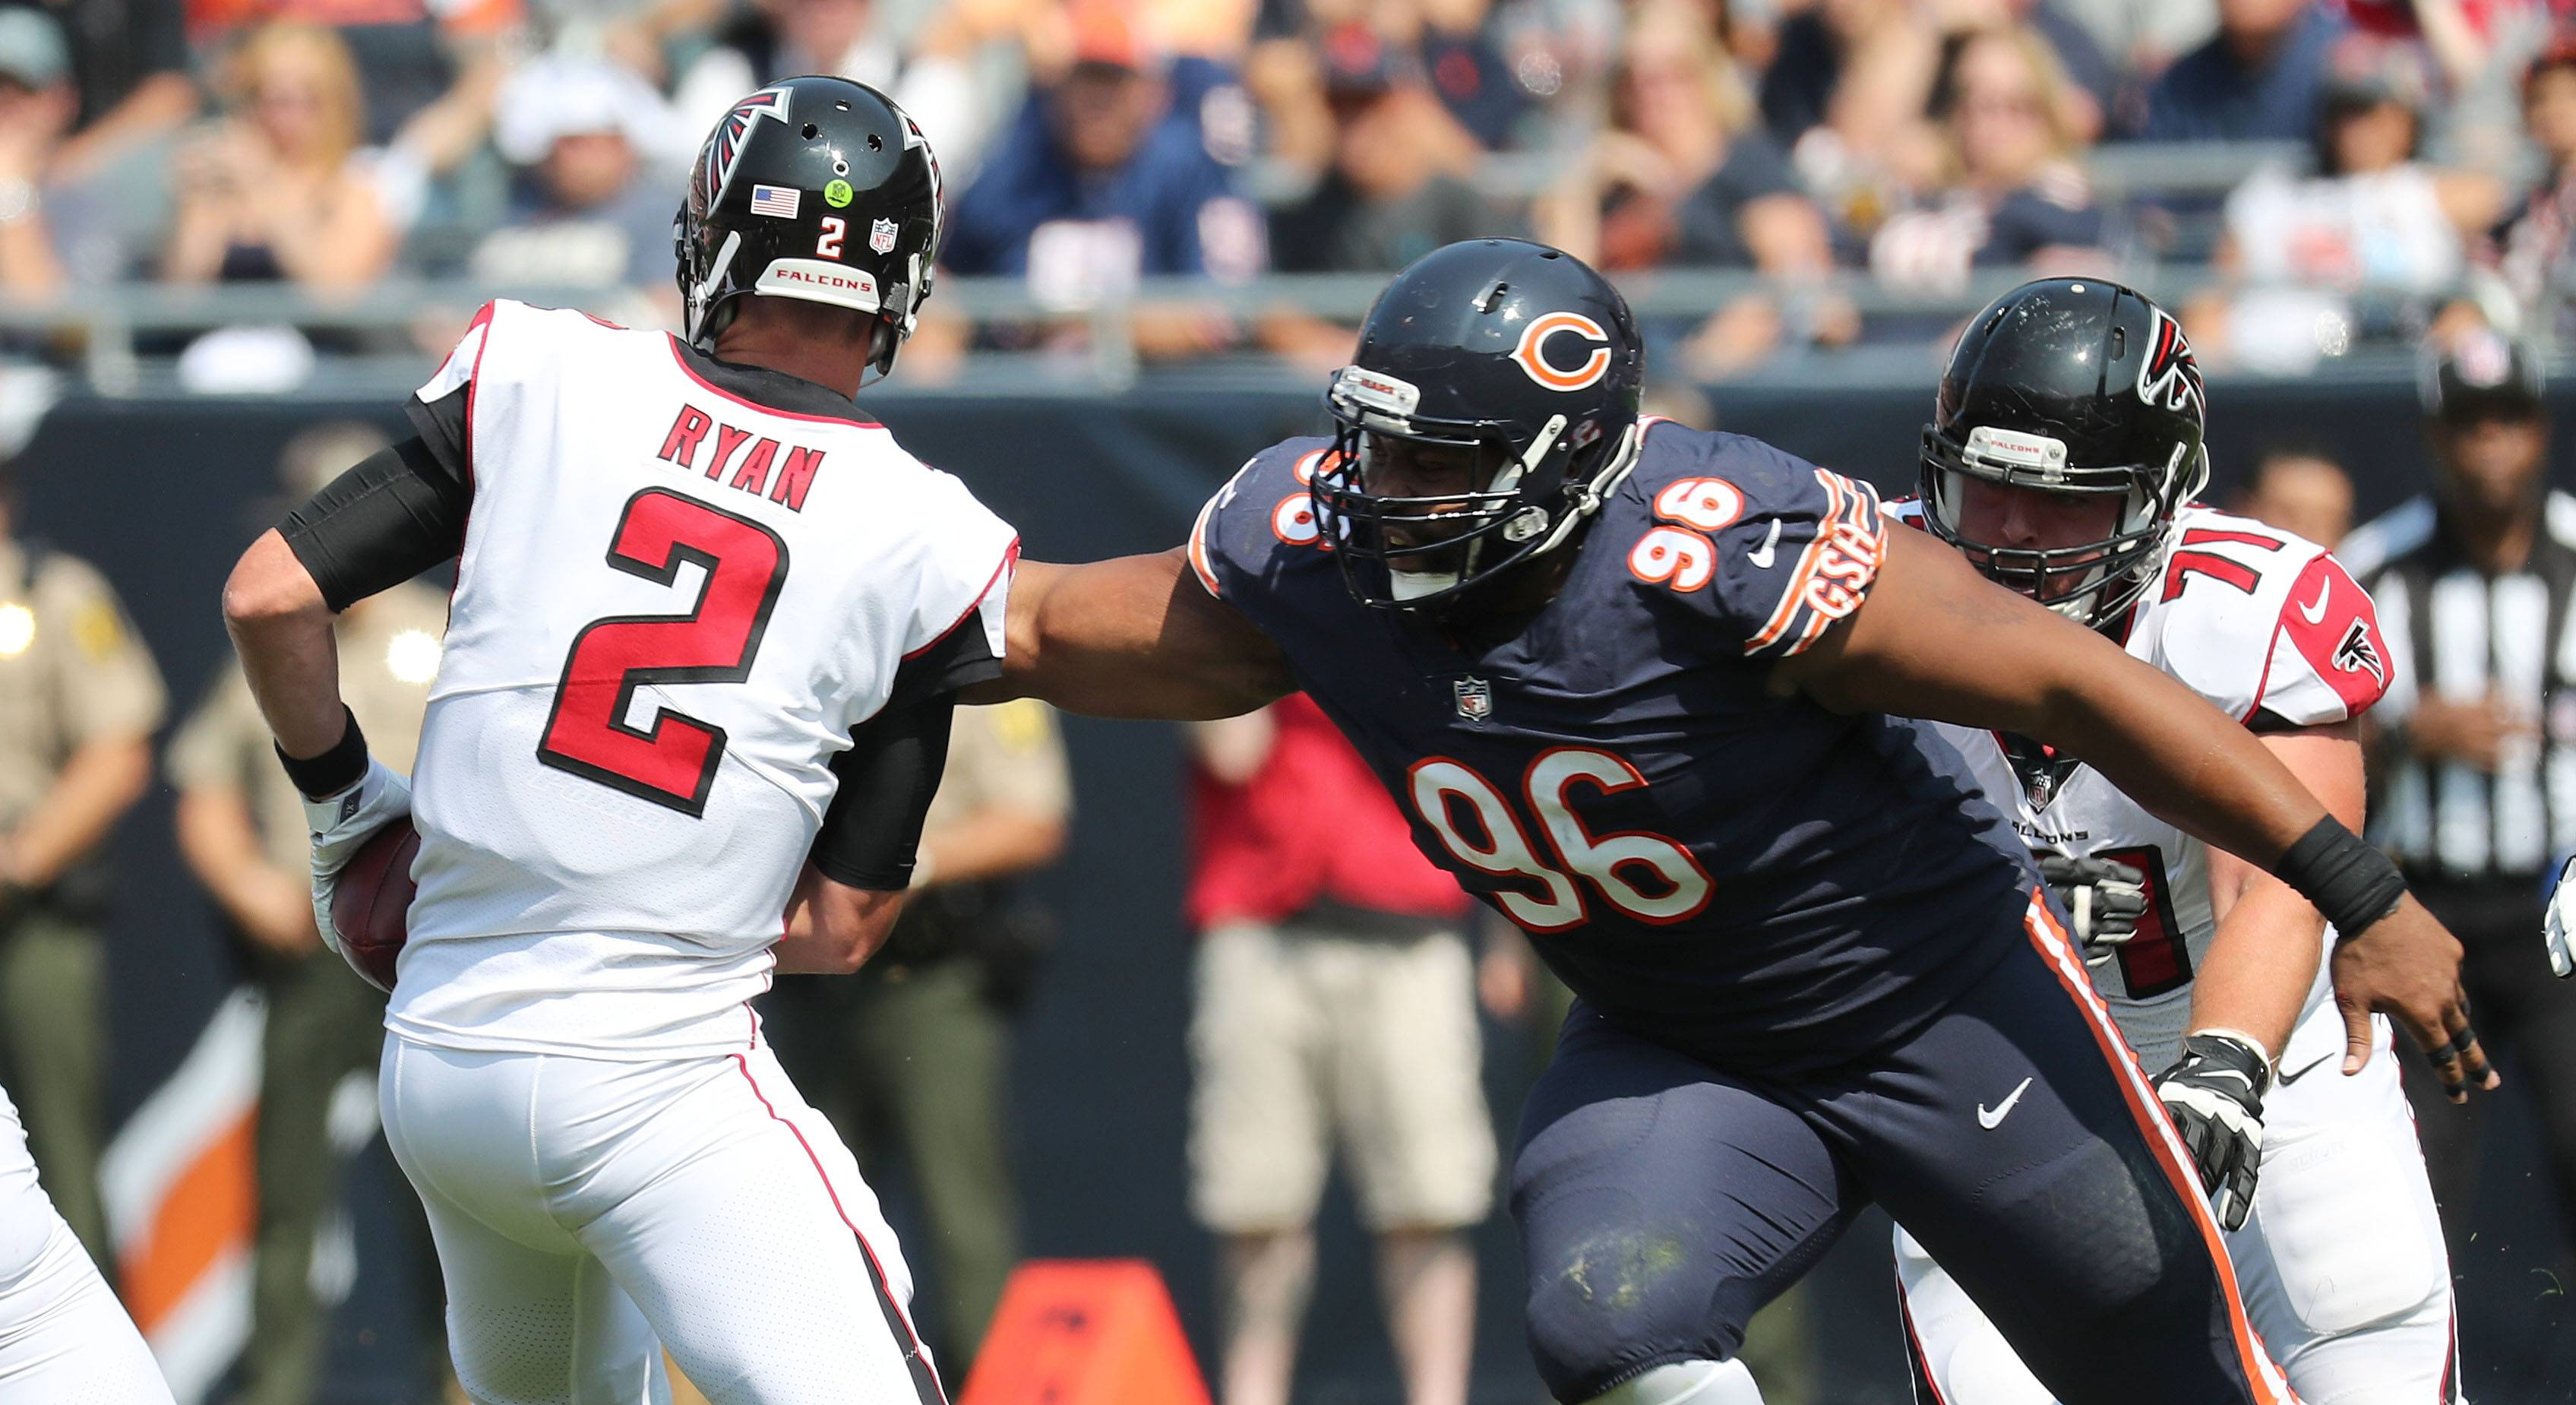 Chicago Bears defensive end Akiem Hicks sacks Atlanta Falcons quarterback Matt Ryan during Sunday's game at Soldier Field in Chicago.